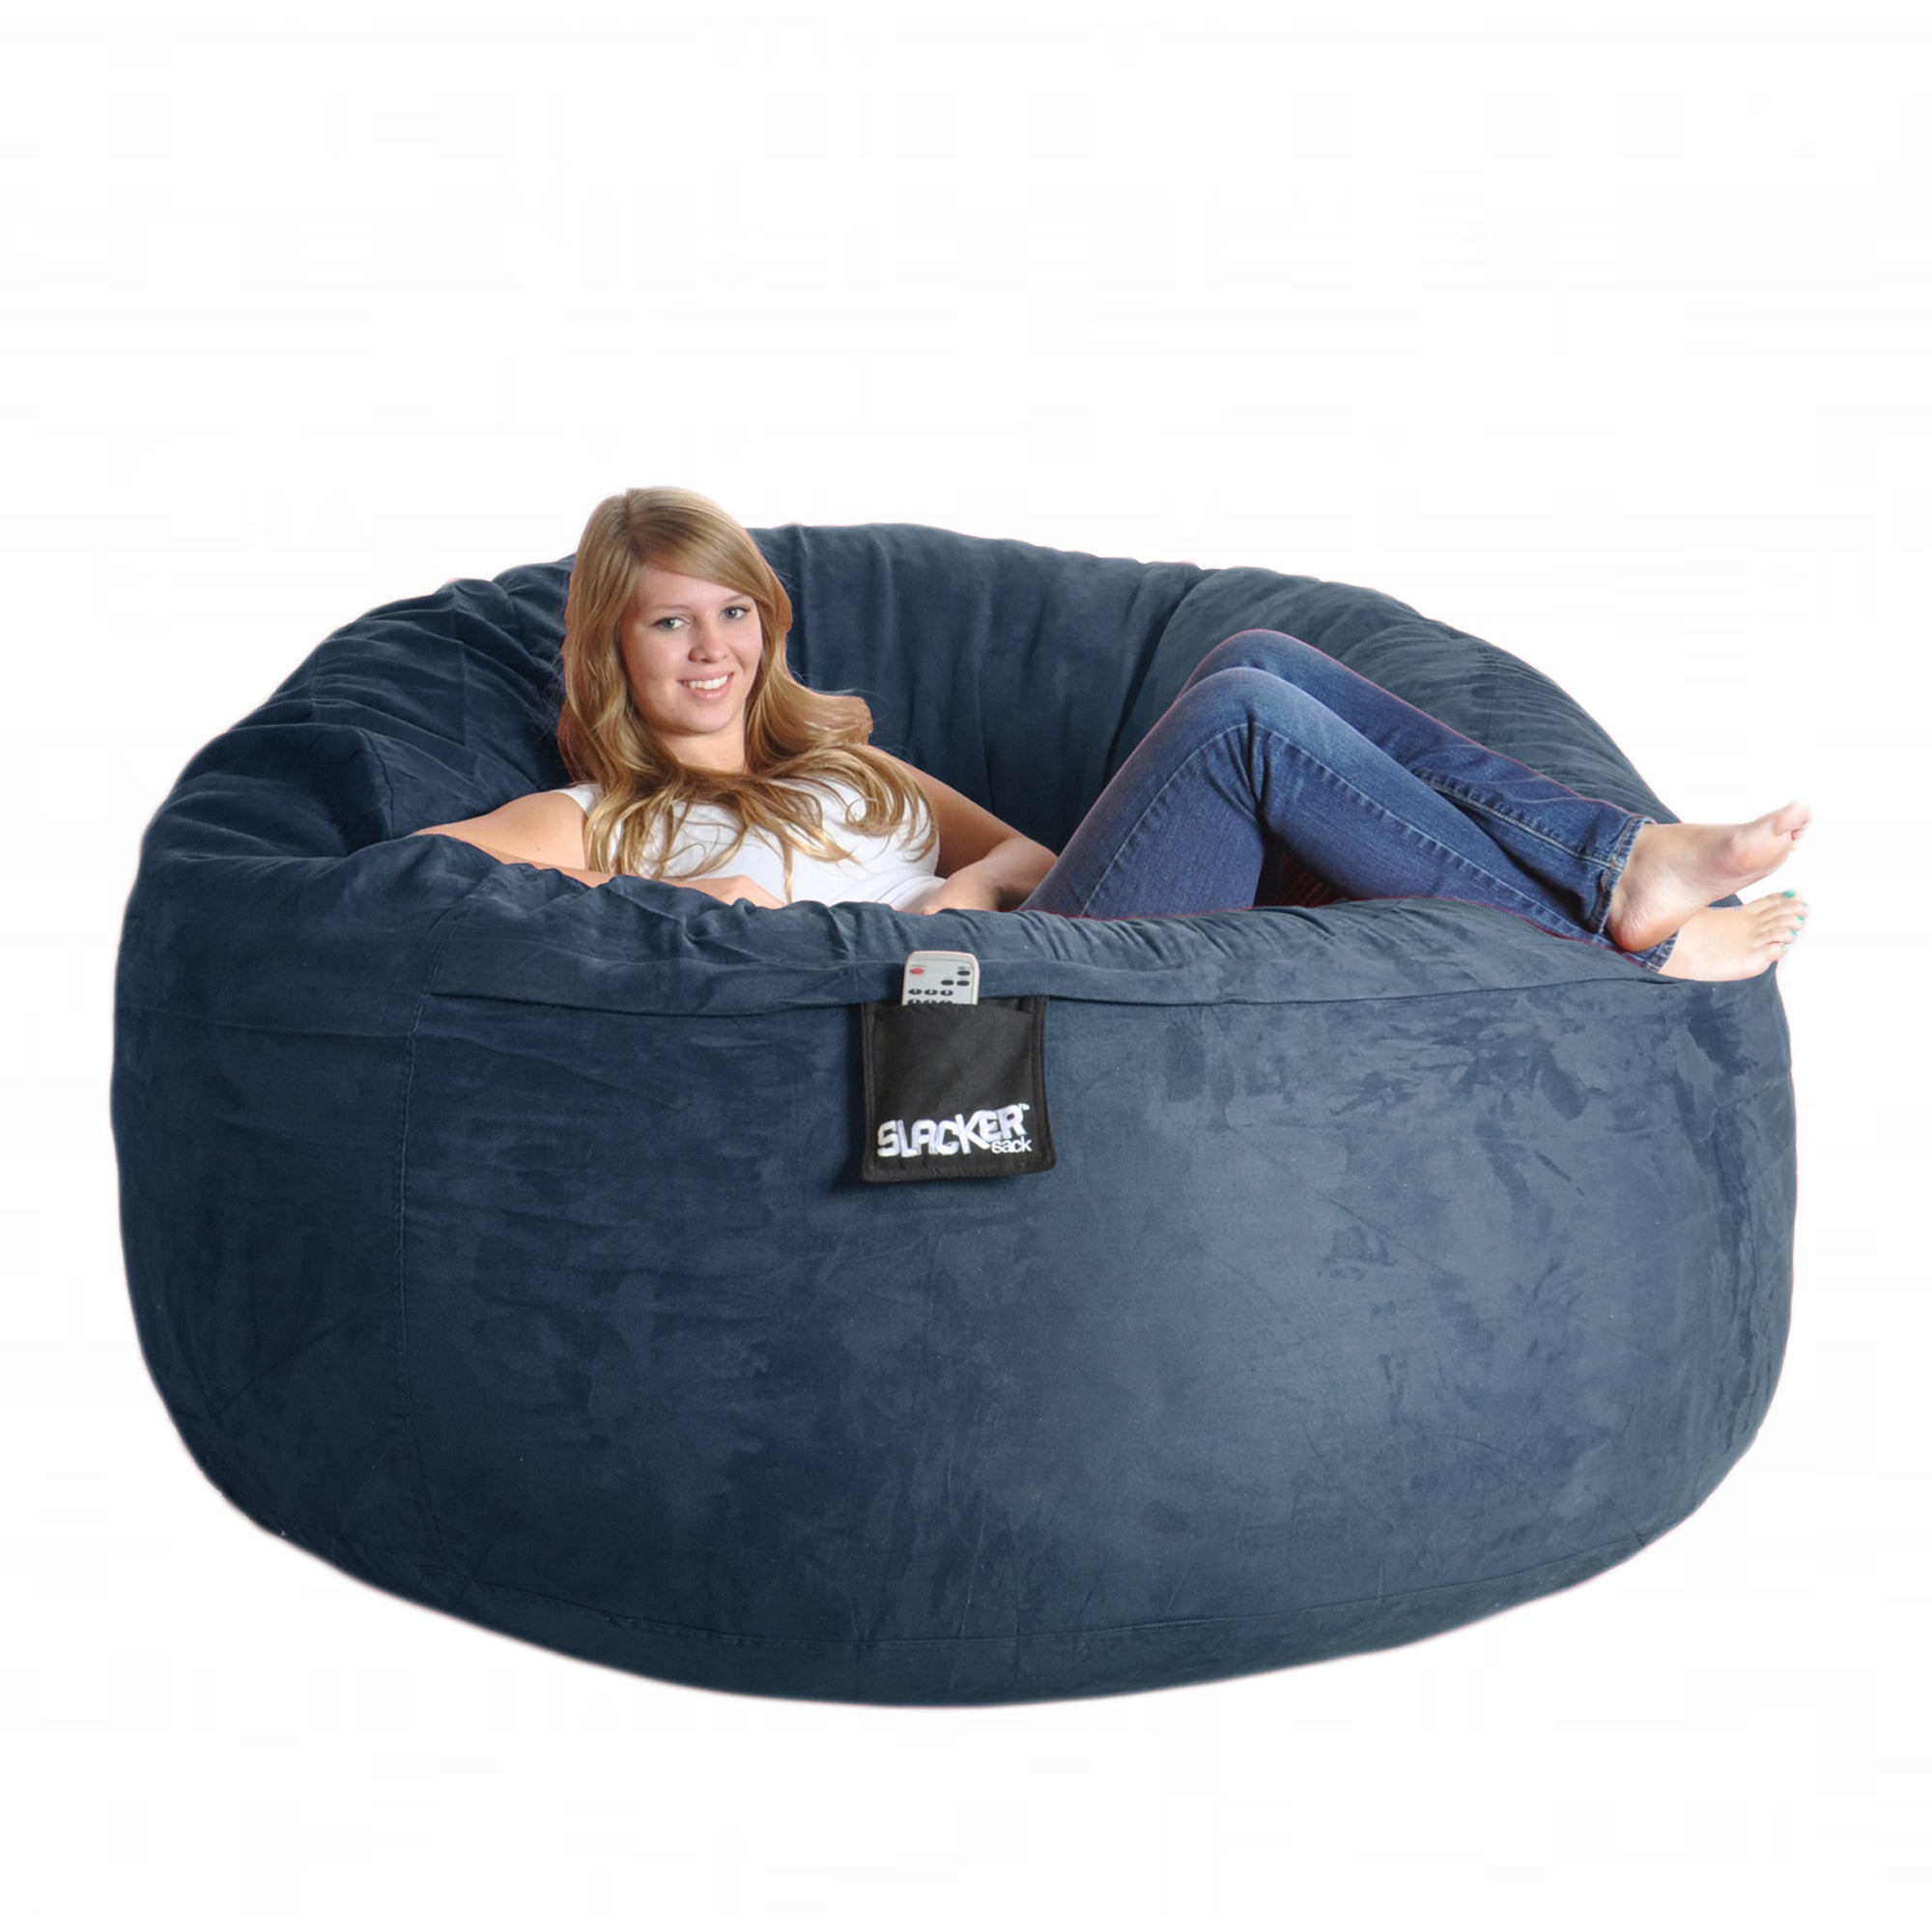 Microfiber Bean Bag Chairs Online At Our Best Living Room Furniture Deals